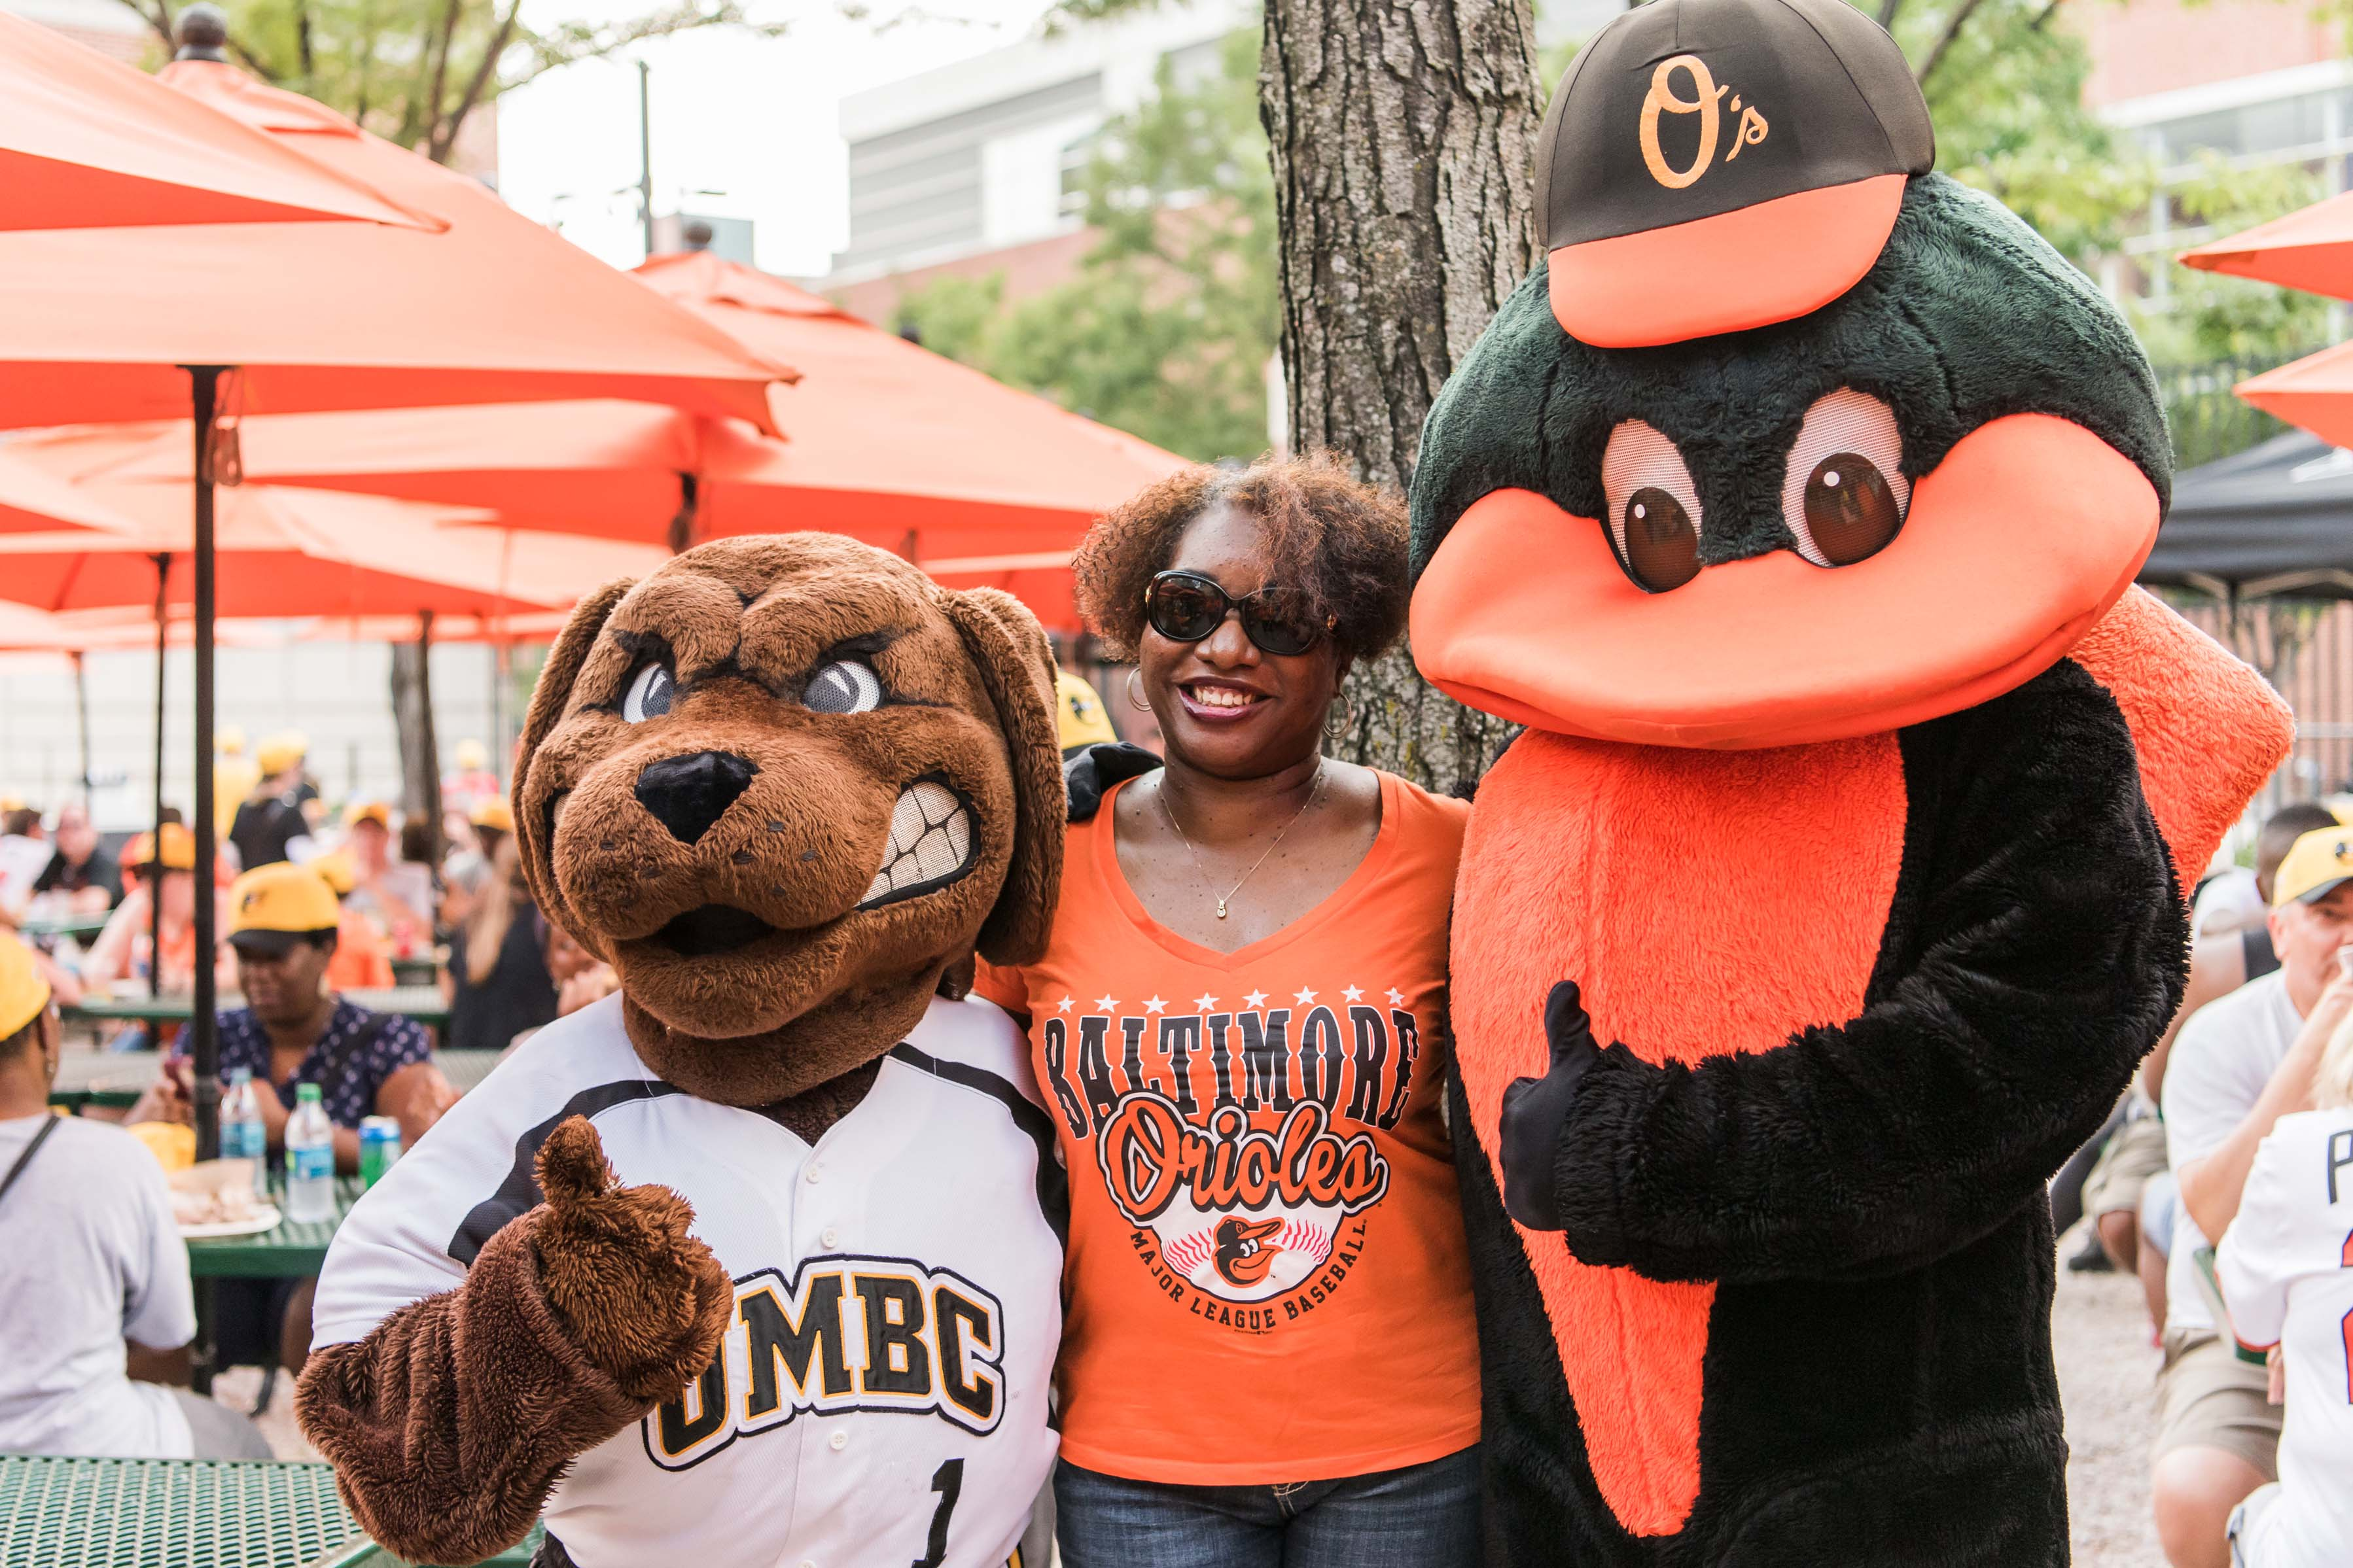 Orioles and UMBC mascot posing with fan